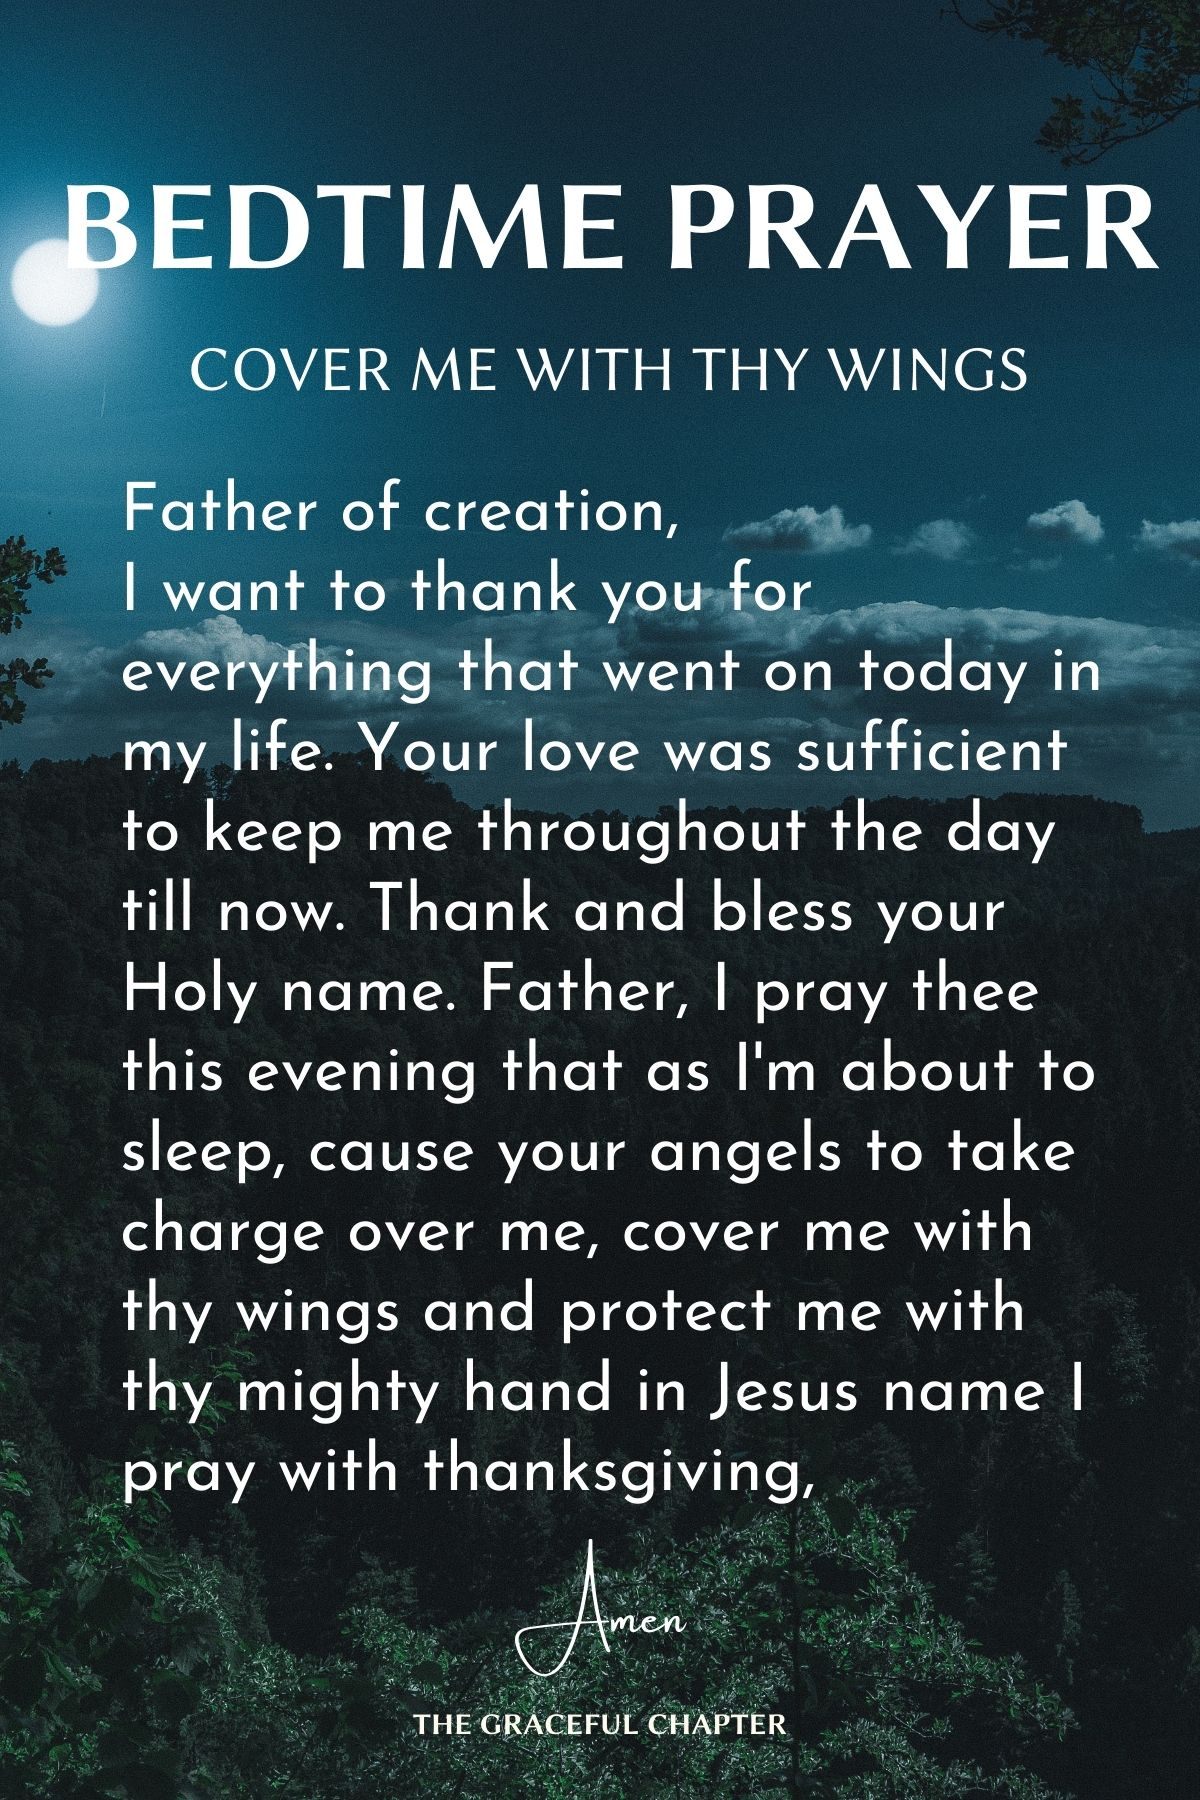 Cover me with thy wings